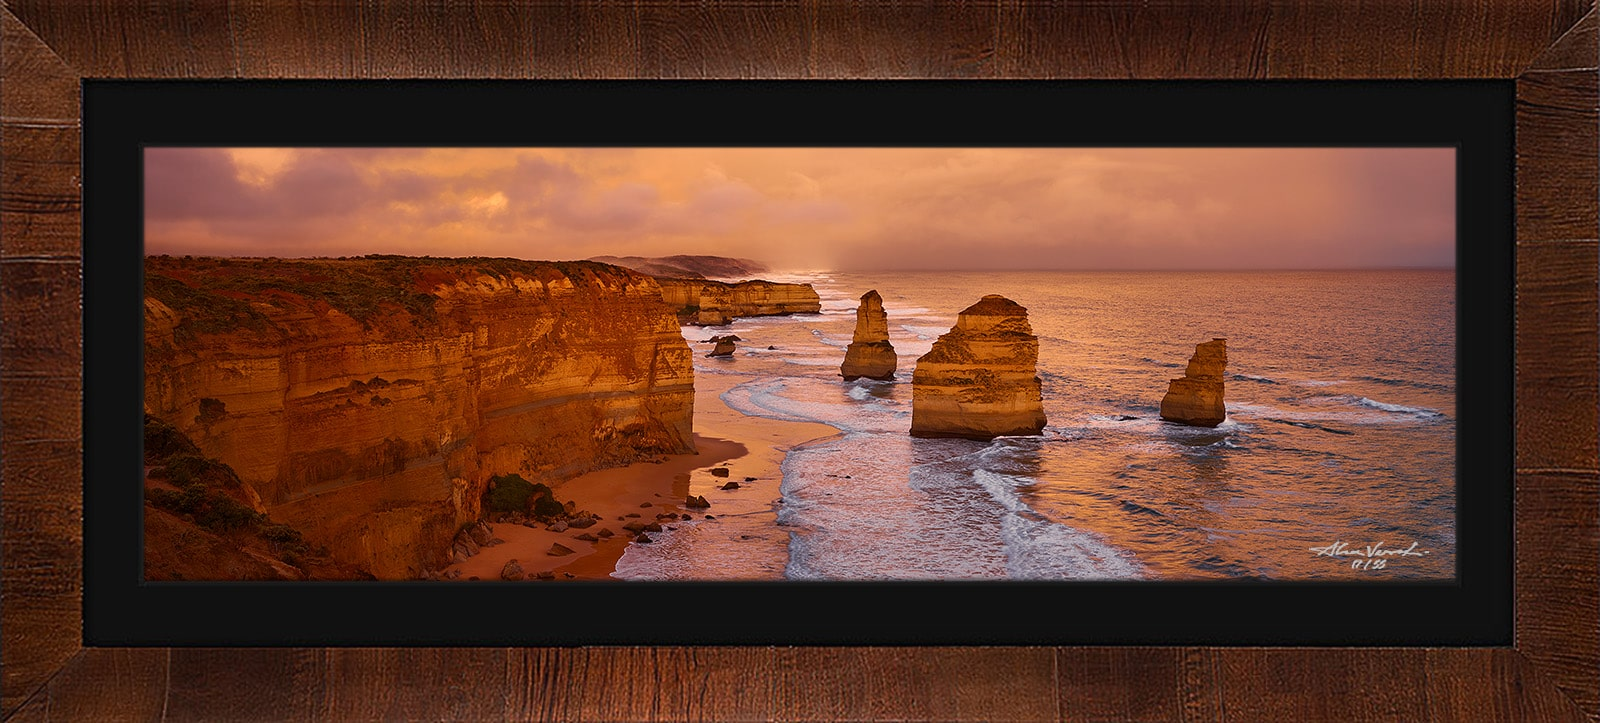 Landscape Photo Print Acrylled And Framed